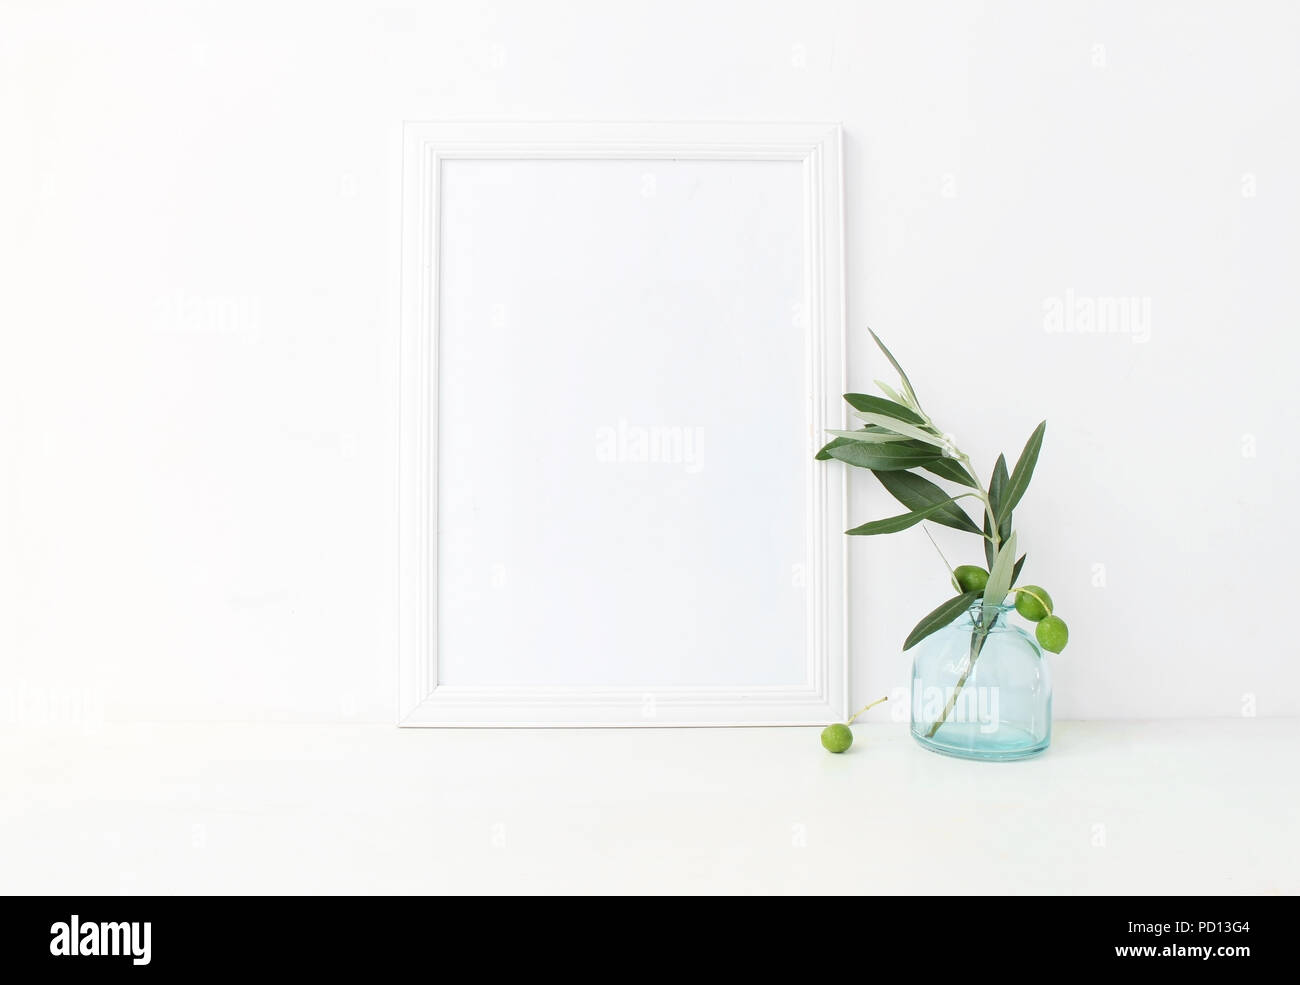 White vertical blank wooden frame mockup with a green olive branches in blue glass vase lying on the table. Mediterranean summer poster product design. Styled stock feminine photography. Home decor. - Stock Image